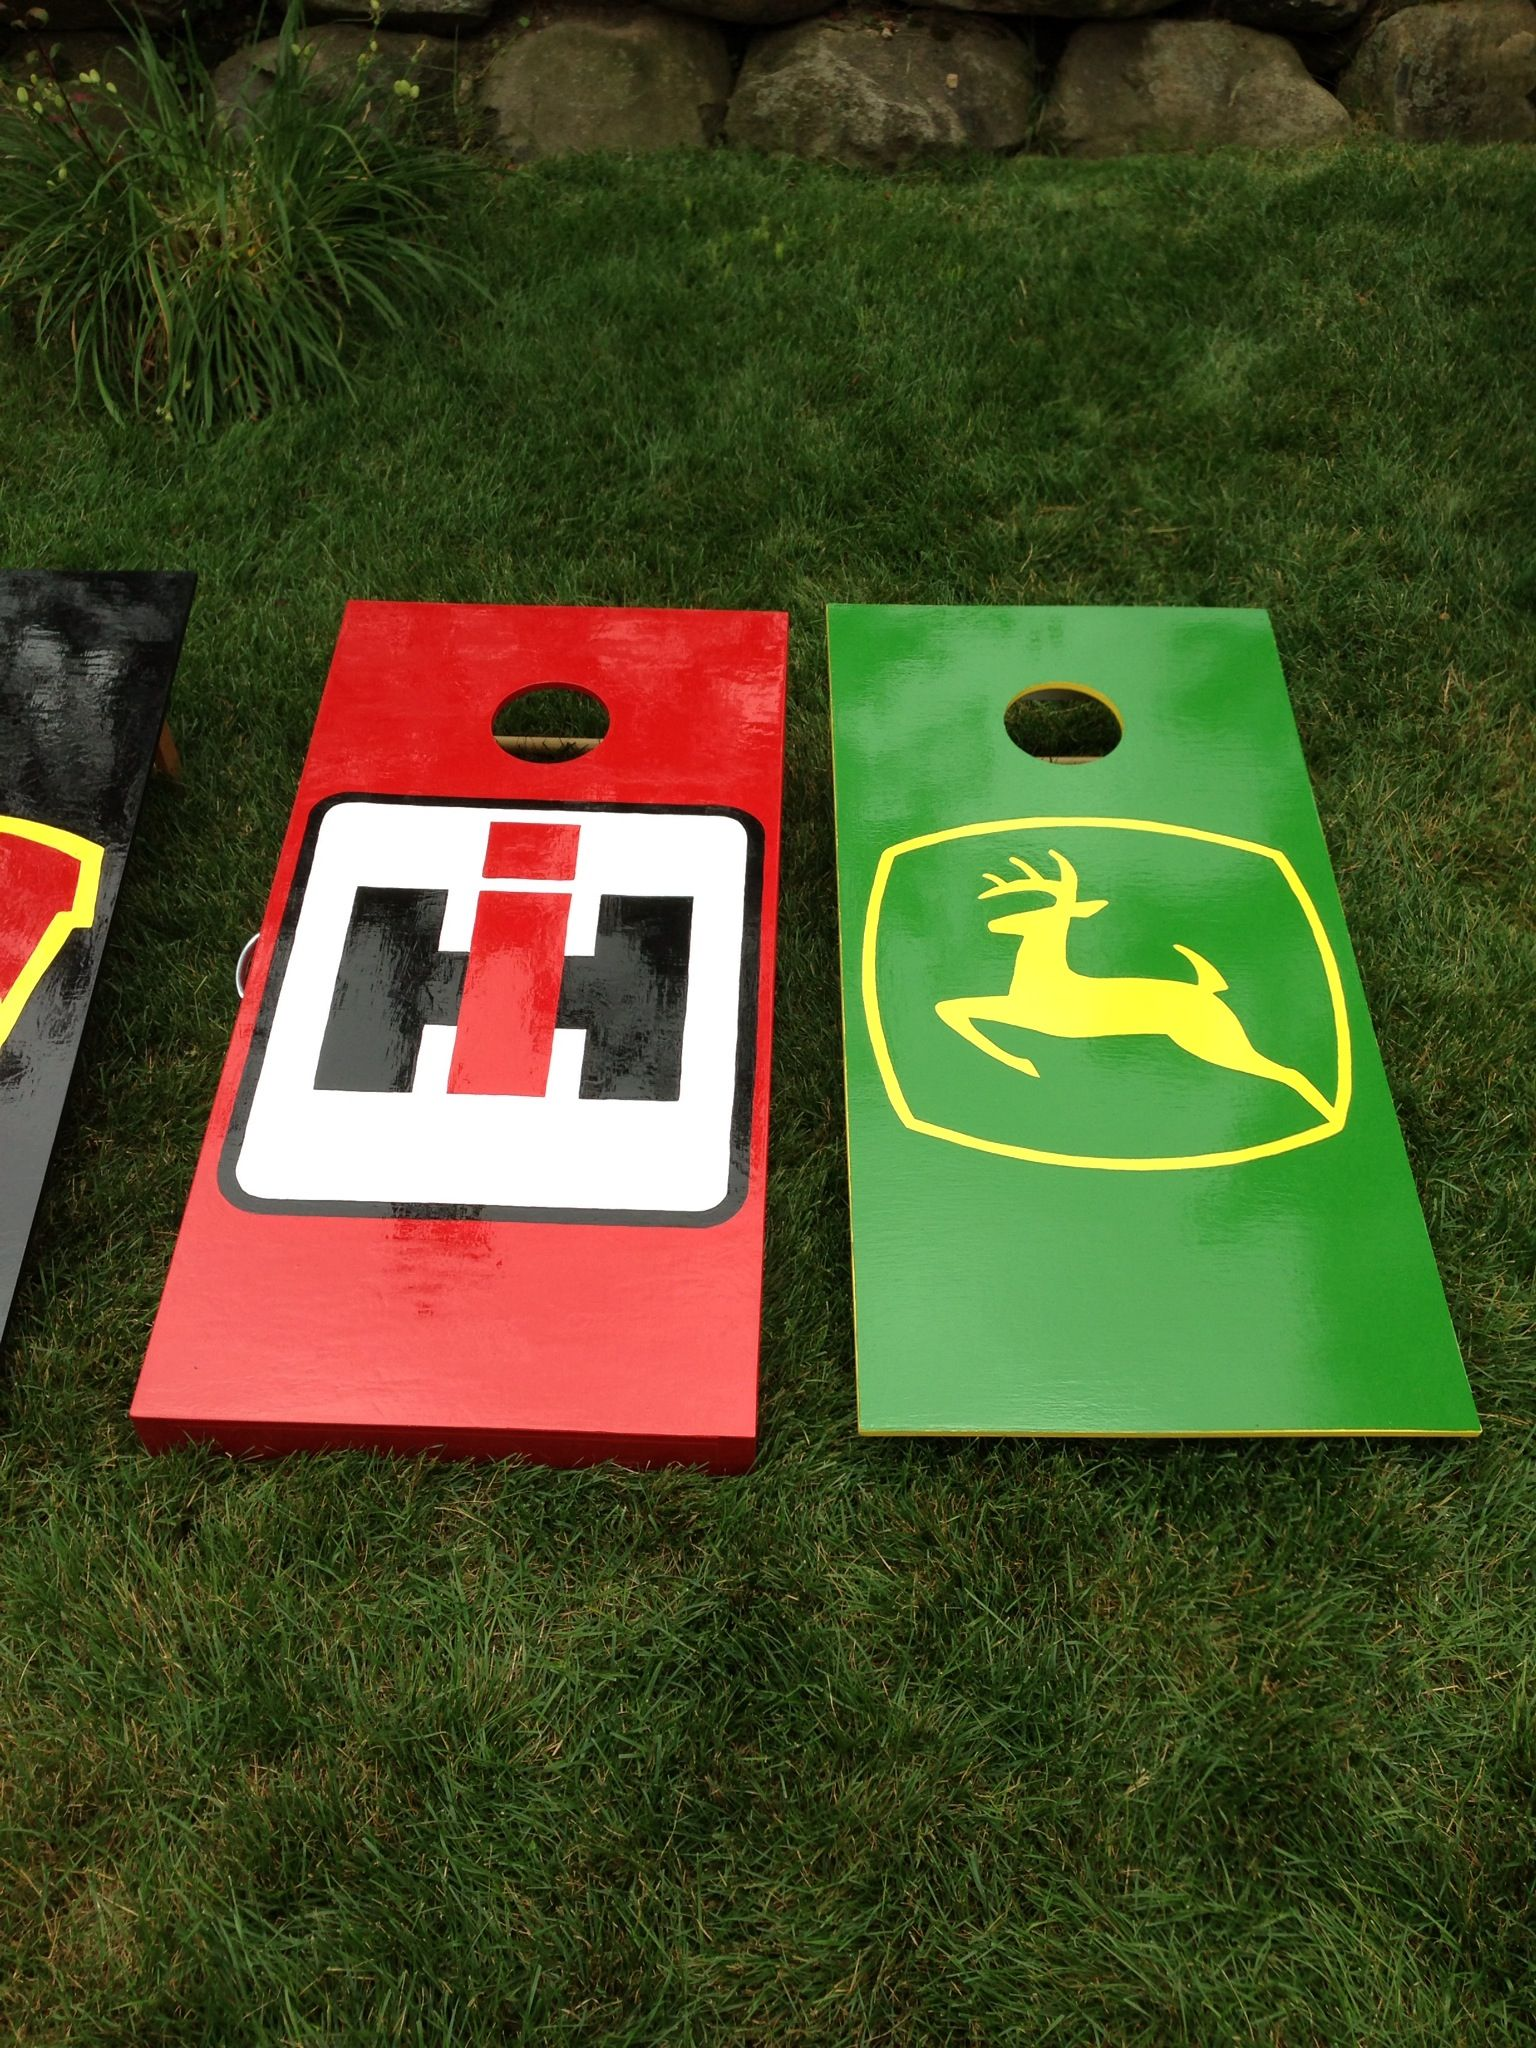 These are the boards my dad made for my cousin and his